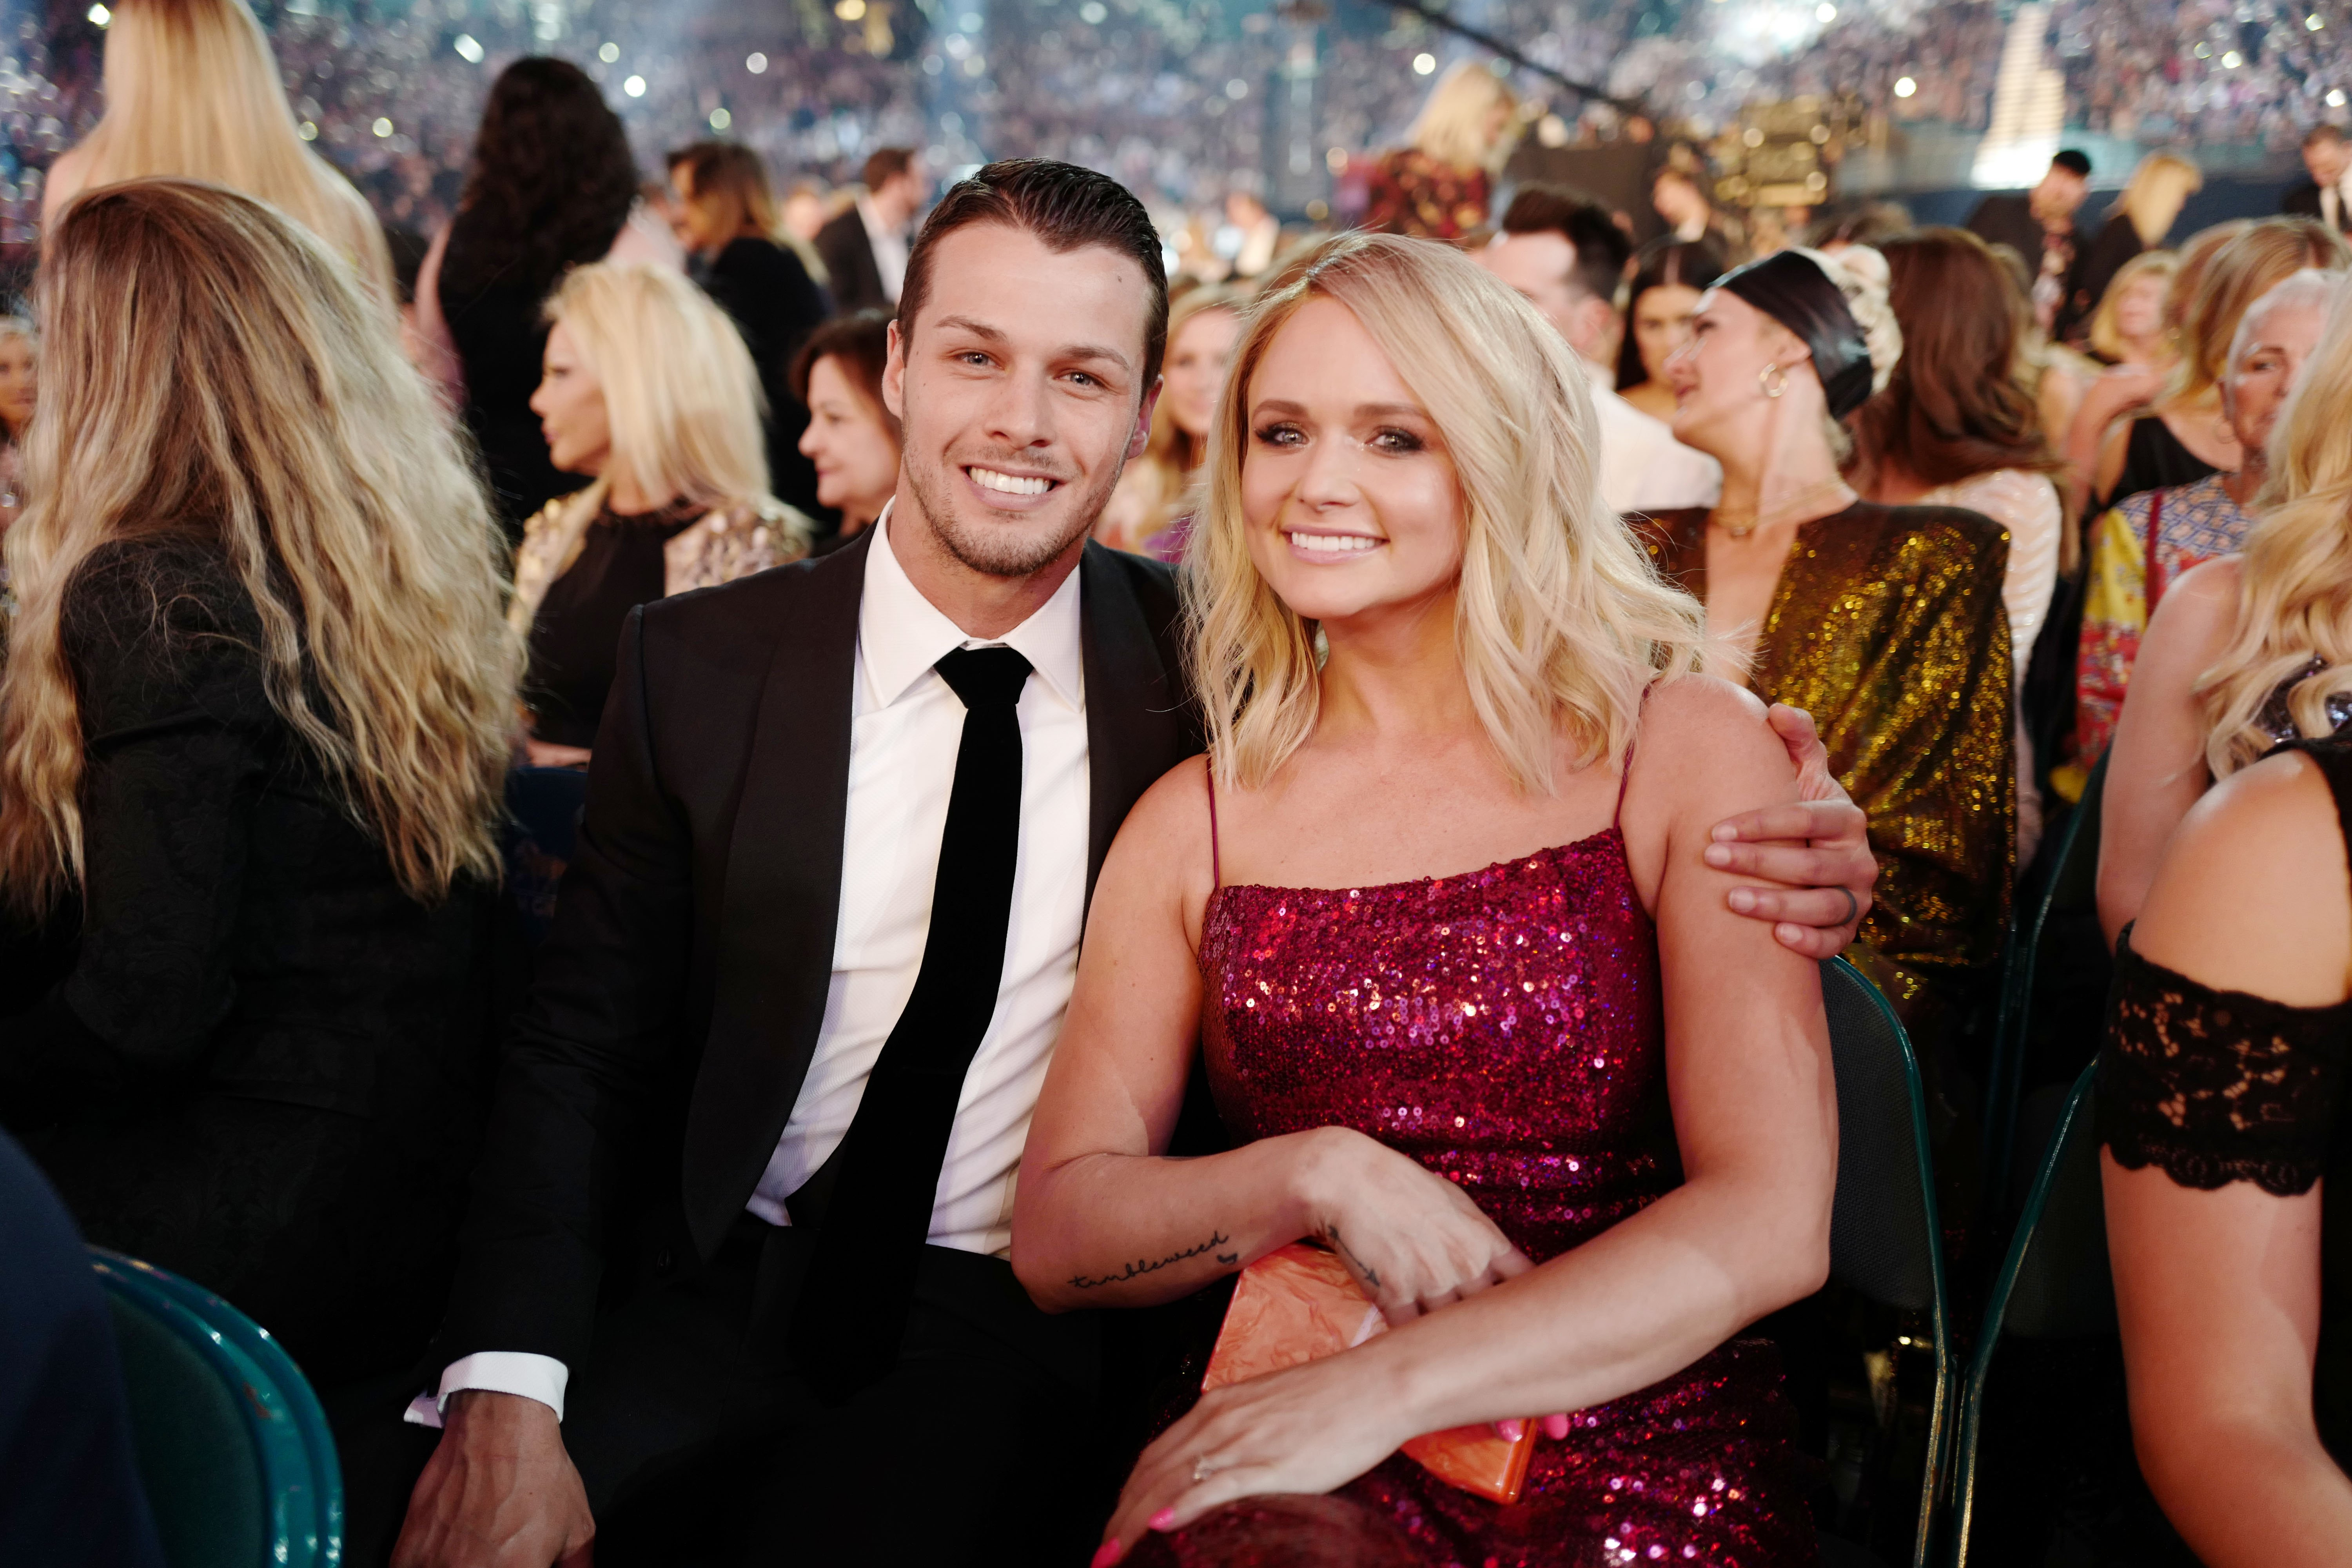 Brendan McLoughlin and Miranda Lambert attend the 54th Academy of Country Music Awards in Las Vegas, Nevada on April 7, 2019 | Photo: Getty Images